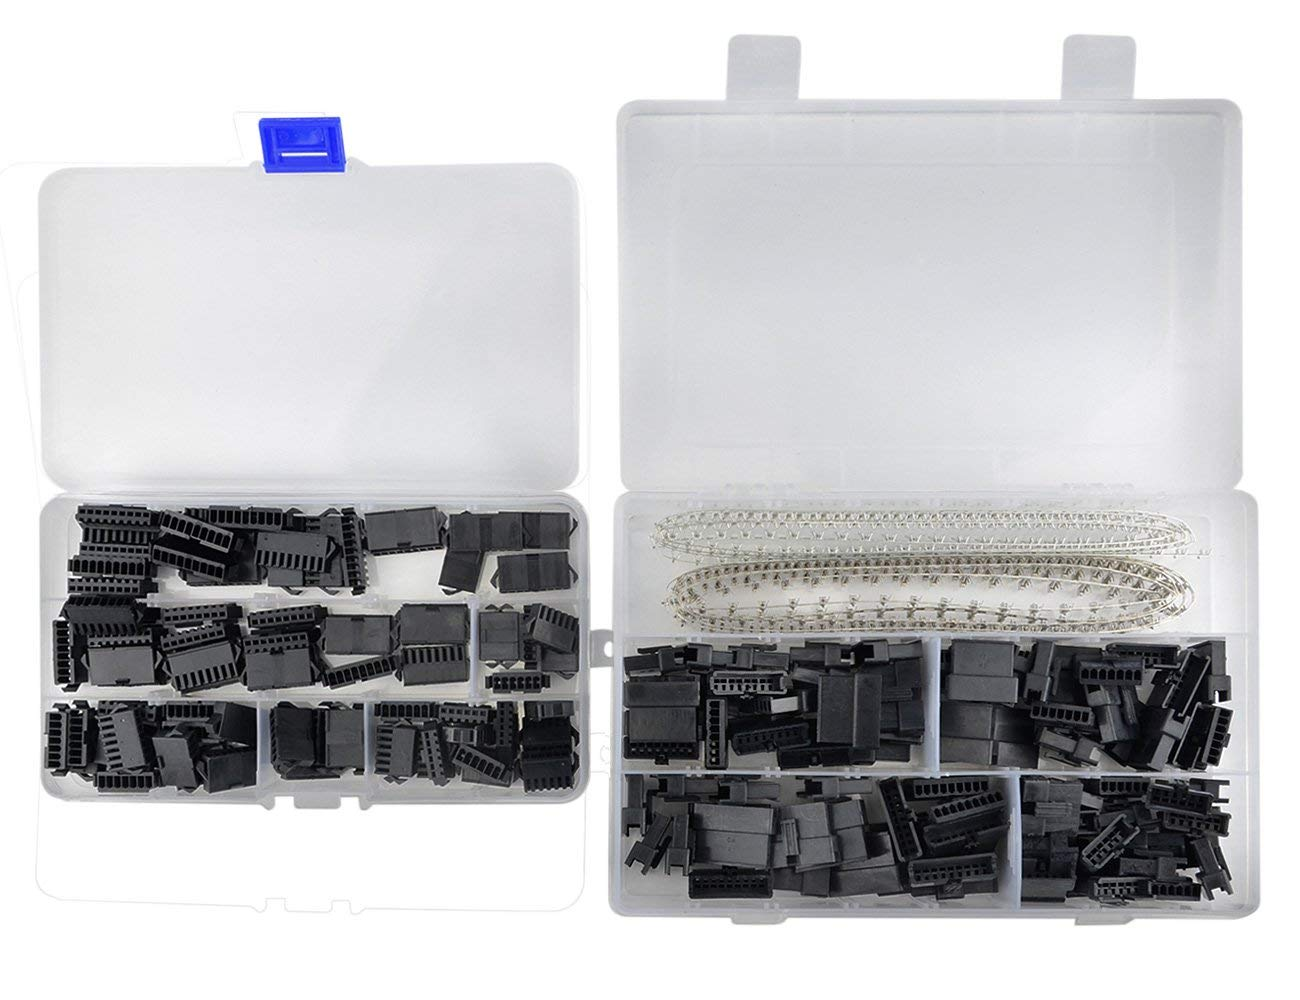 XLX 560Pcs 2.5mm Pitch JST-SM 6/ 7/ 8/ 9 Pin Male / Female Plug Housing and Male / Female Pin Header Crimp Terminal Connector Assortment Kit ( 4 Size, 80 Set, each 20 Set )